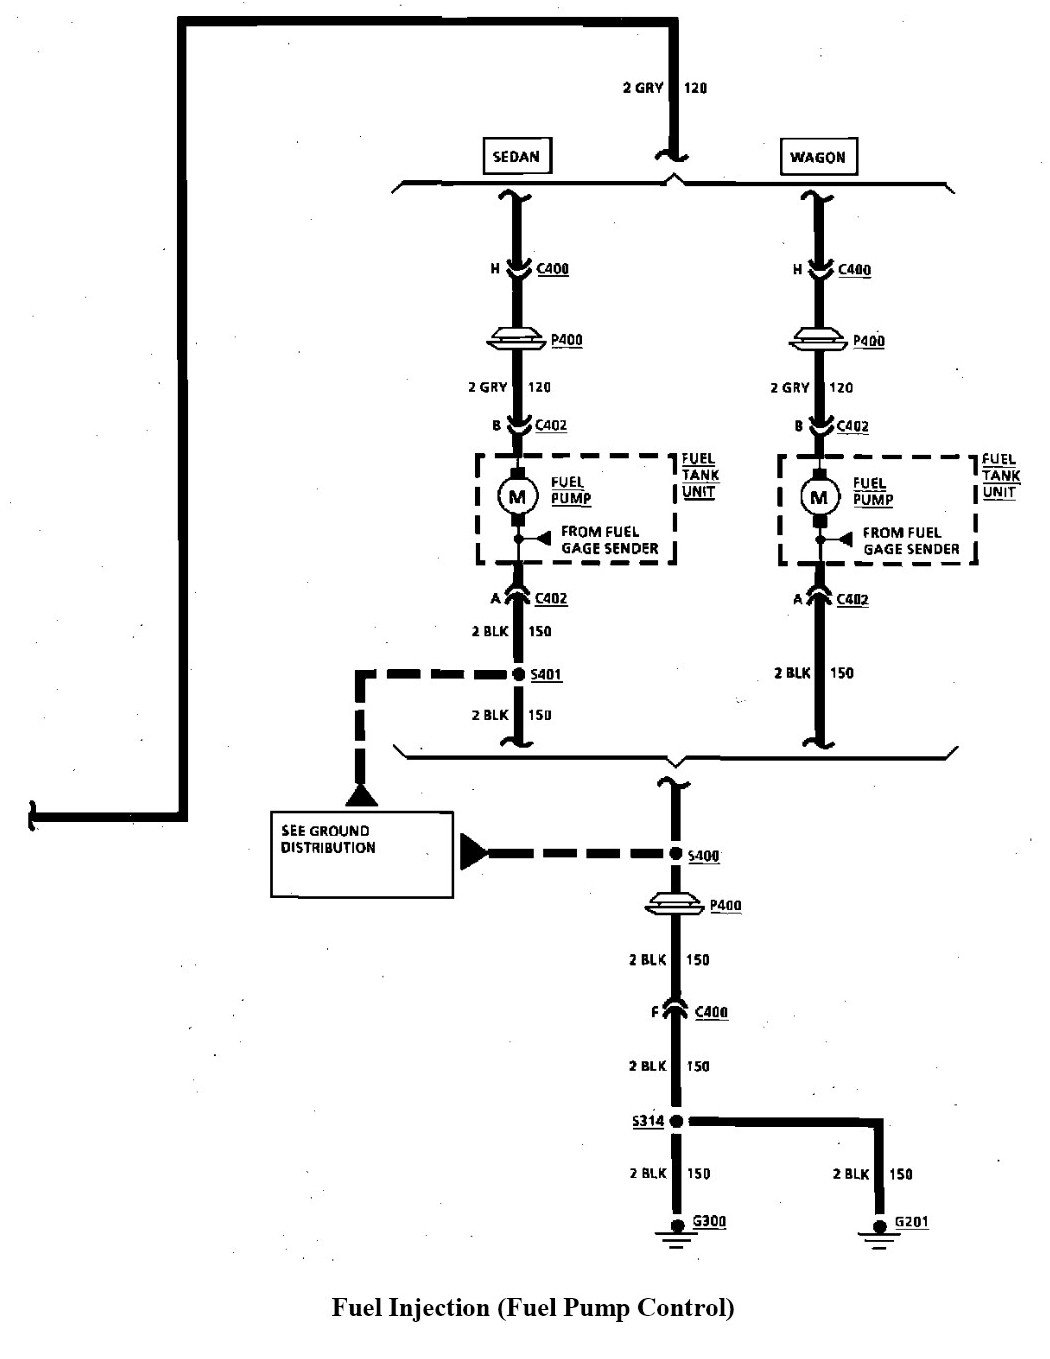 What Is The Wiring Diagram For The Fuel Pump On A 1992